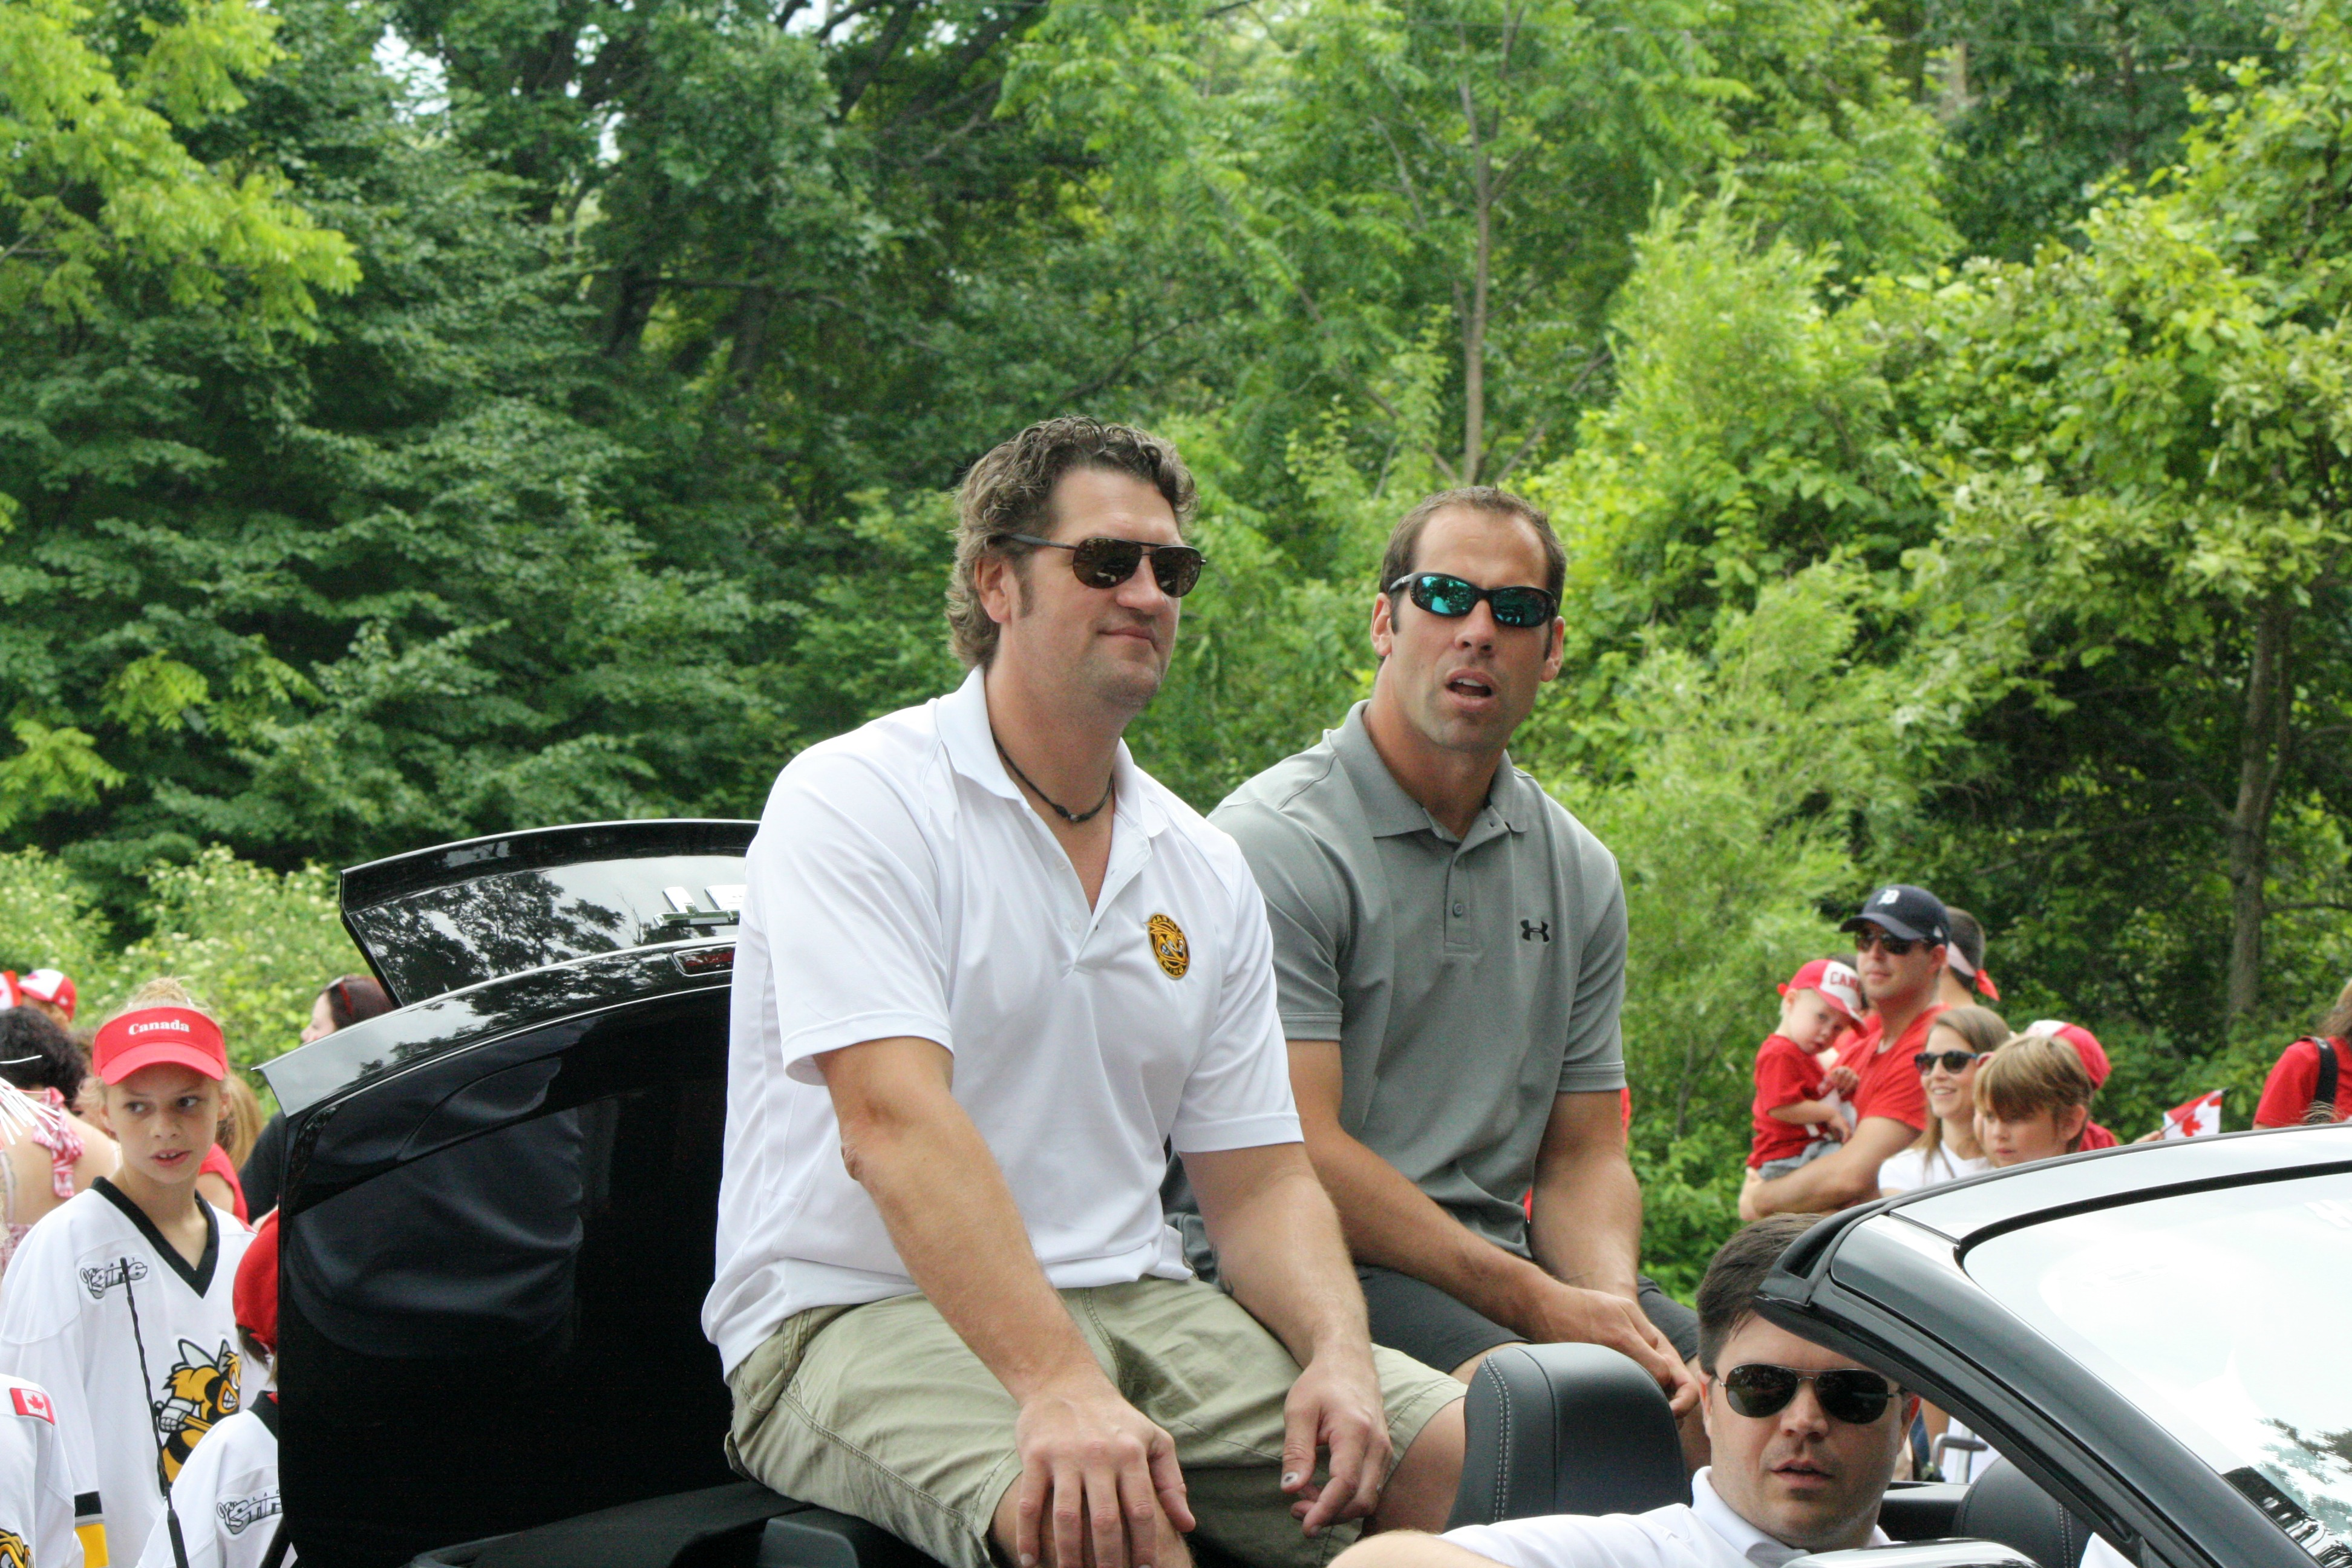 New Sting owners Derian Hatcher and David Legwand in Canada Day parade July 1, 2015 (BlackburnNews.com photo by Dave Dentinger)